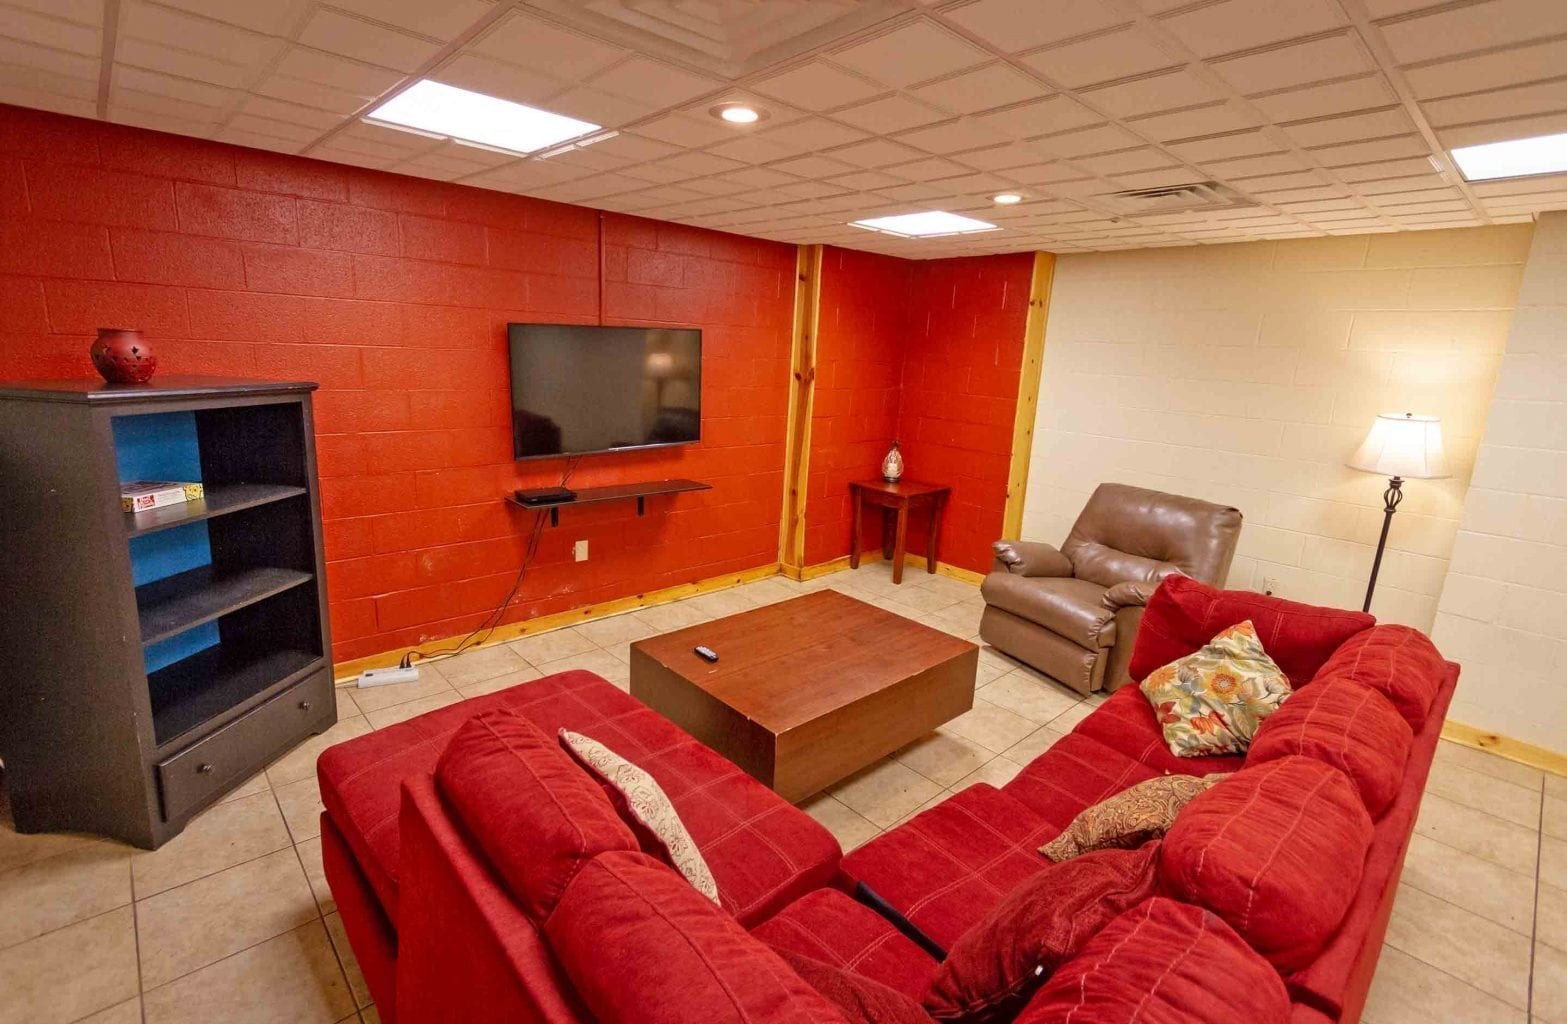 A view of the television and sectional couch in the basement of Red Fox Log Home at ACE Adventure Resort.